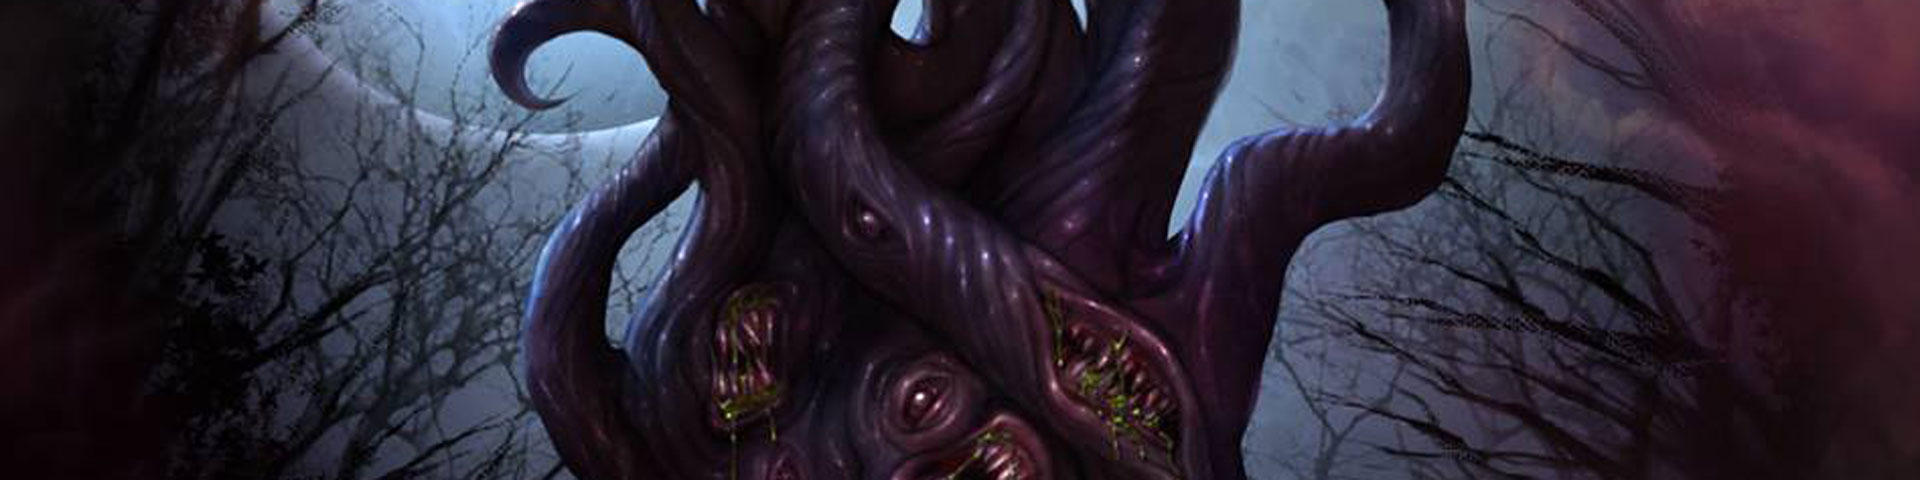 A tentacle horror stalks the woods on a moonlit night.